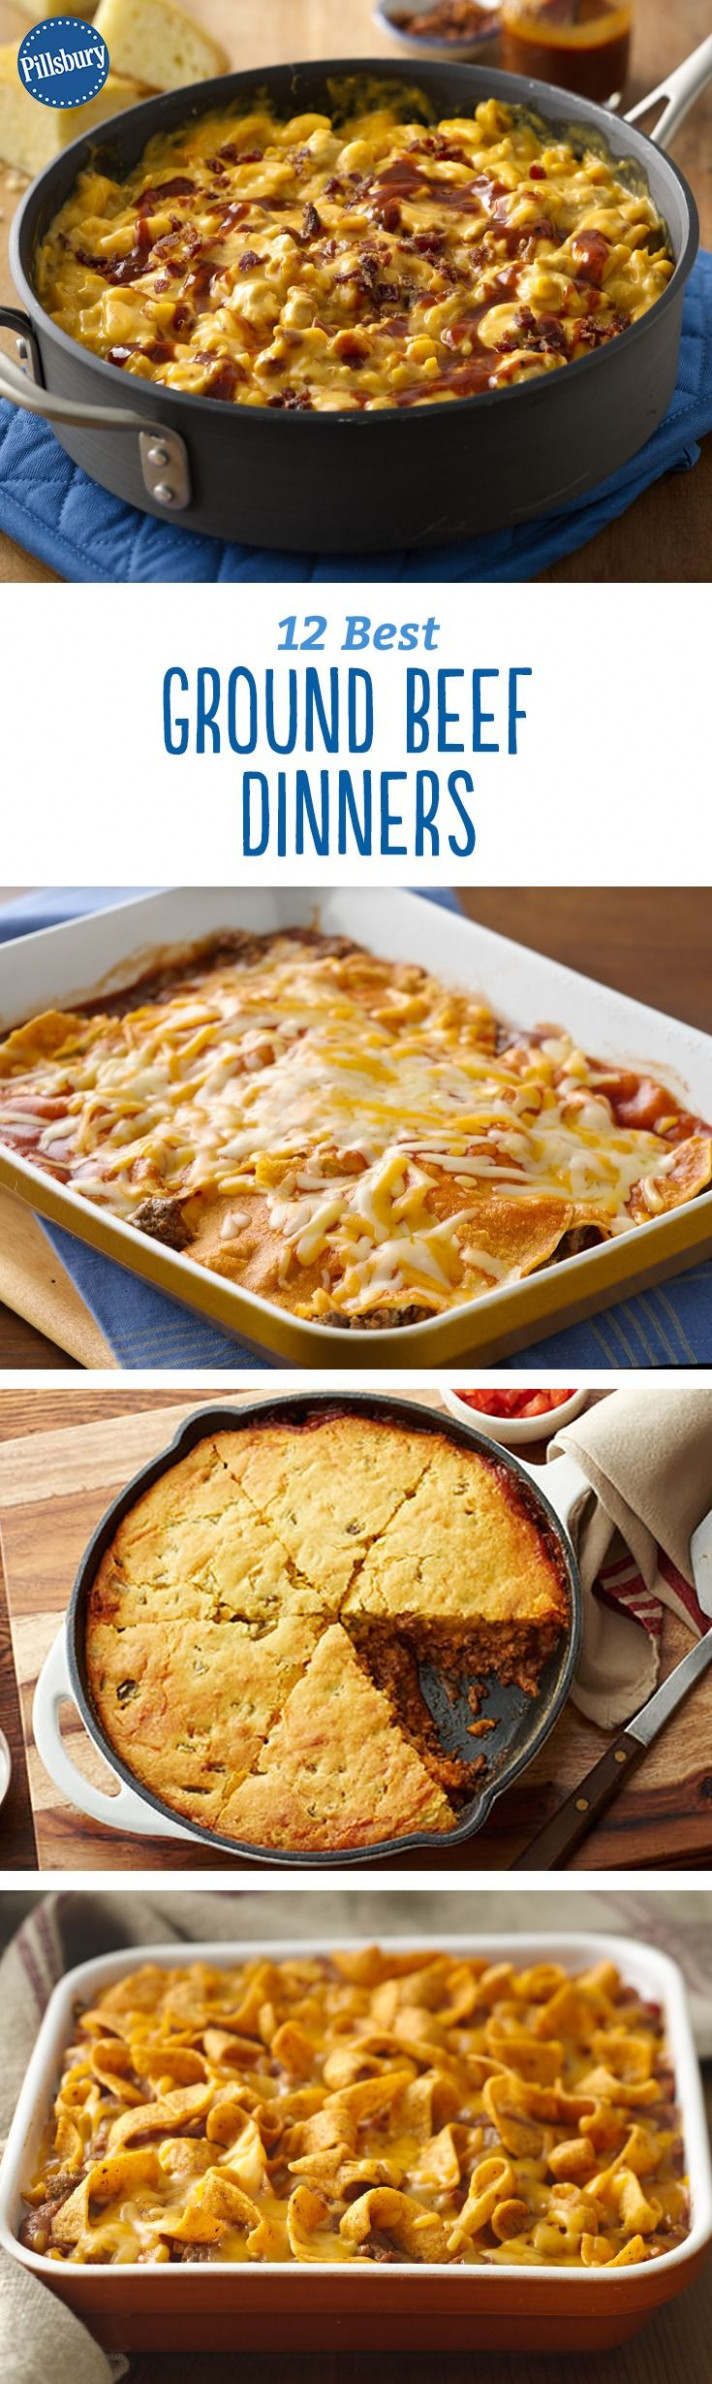 14 Best Ground Beef Dinners | Dinner Recipes | Dinner with ...